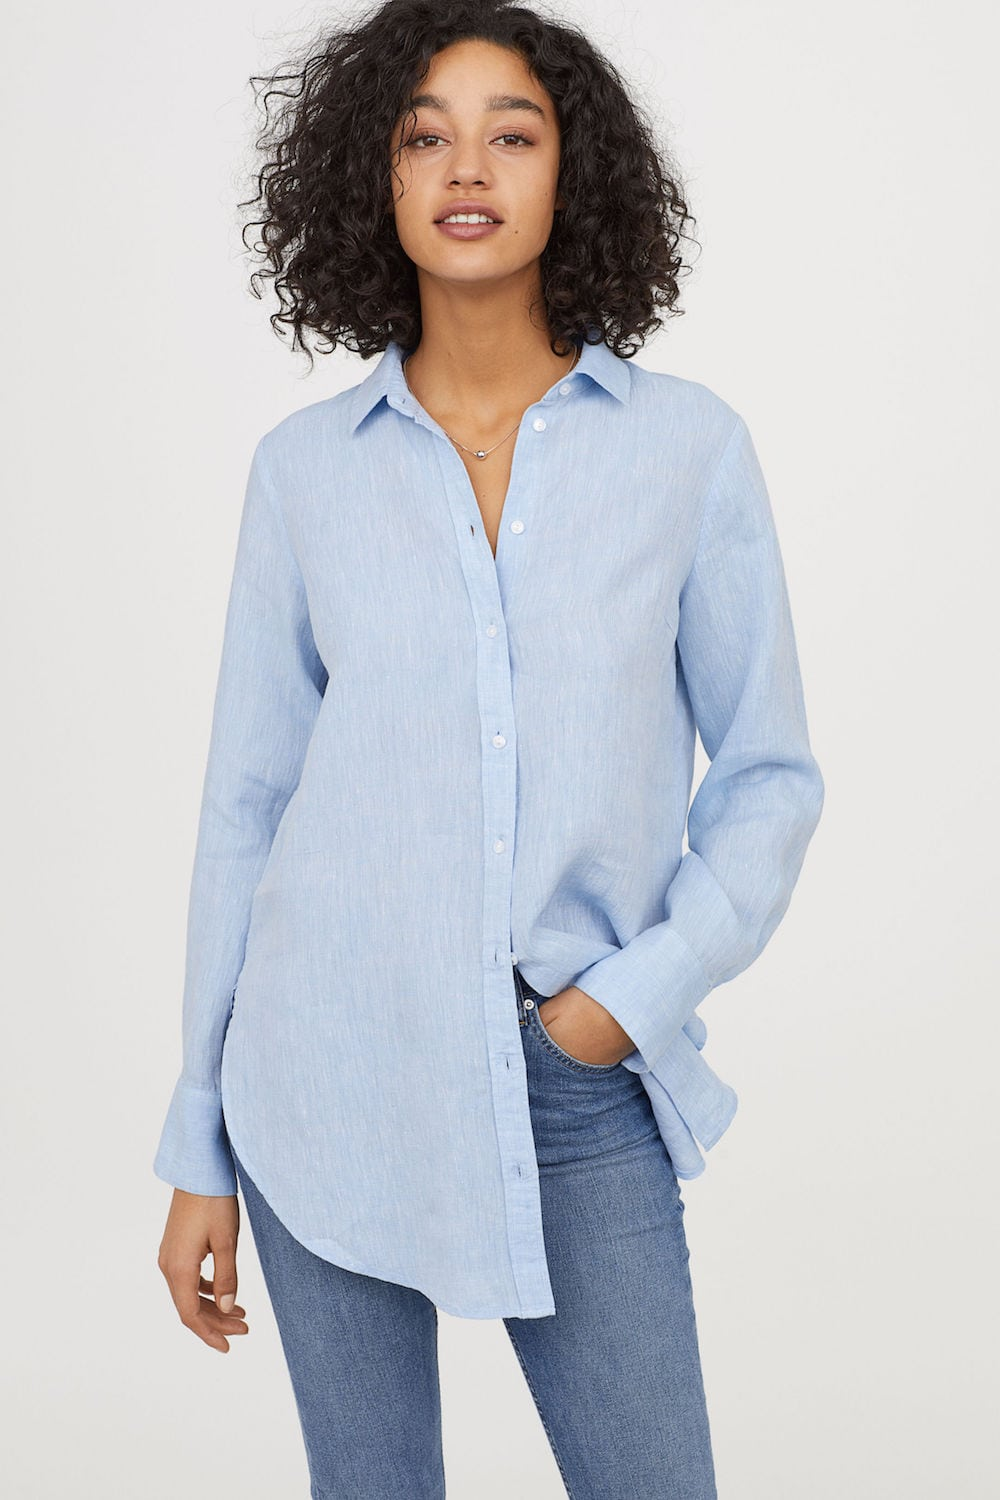 woman in oversized blue shirt